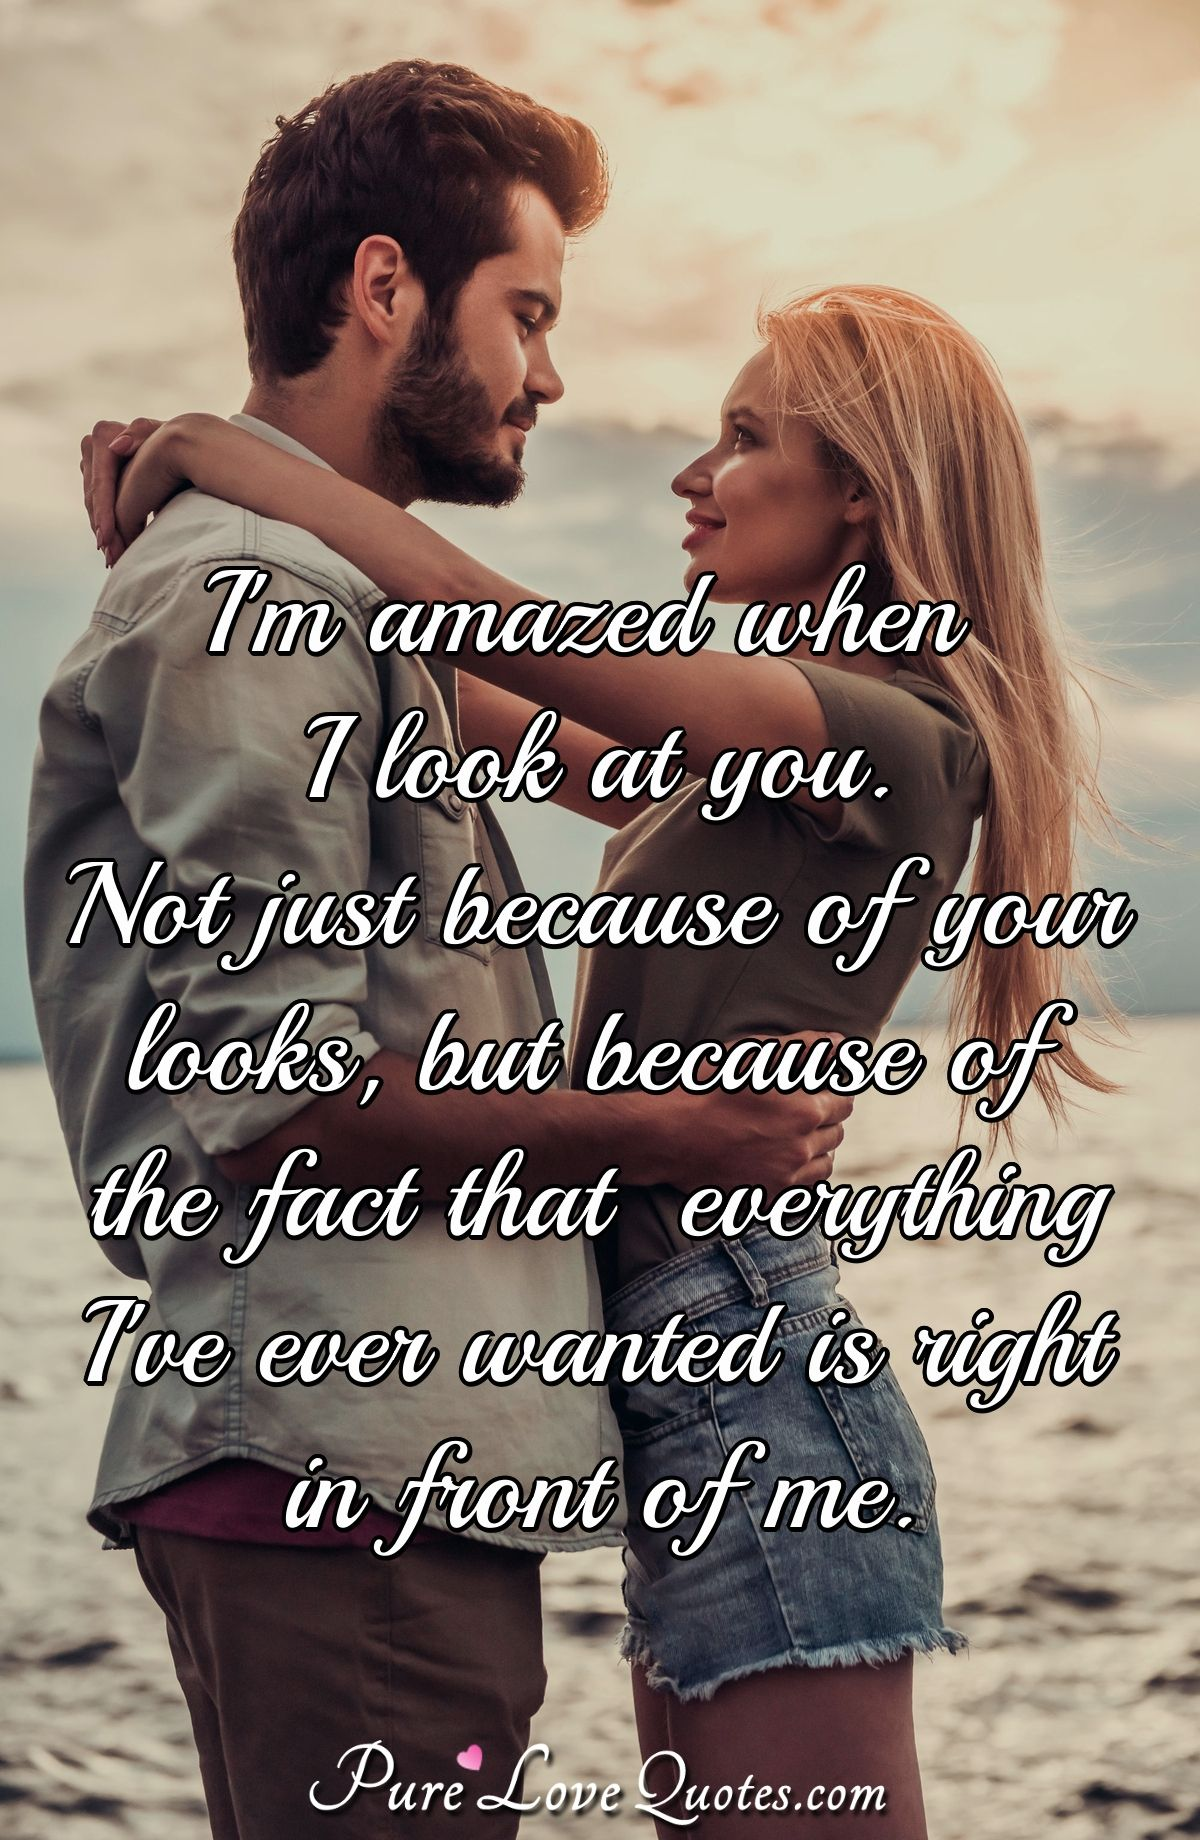 I'm amazed when I look at you. Not just because of your looks, but because of the fact that everything I've ever wanted is right in front of me. - Anonymous